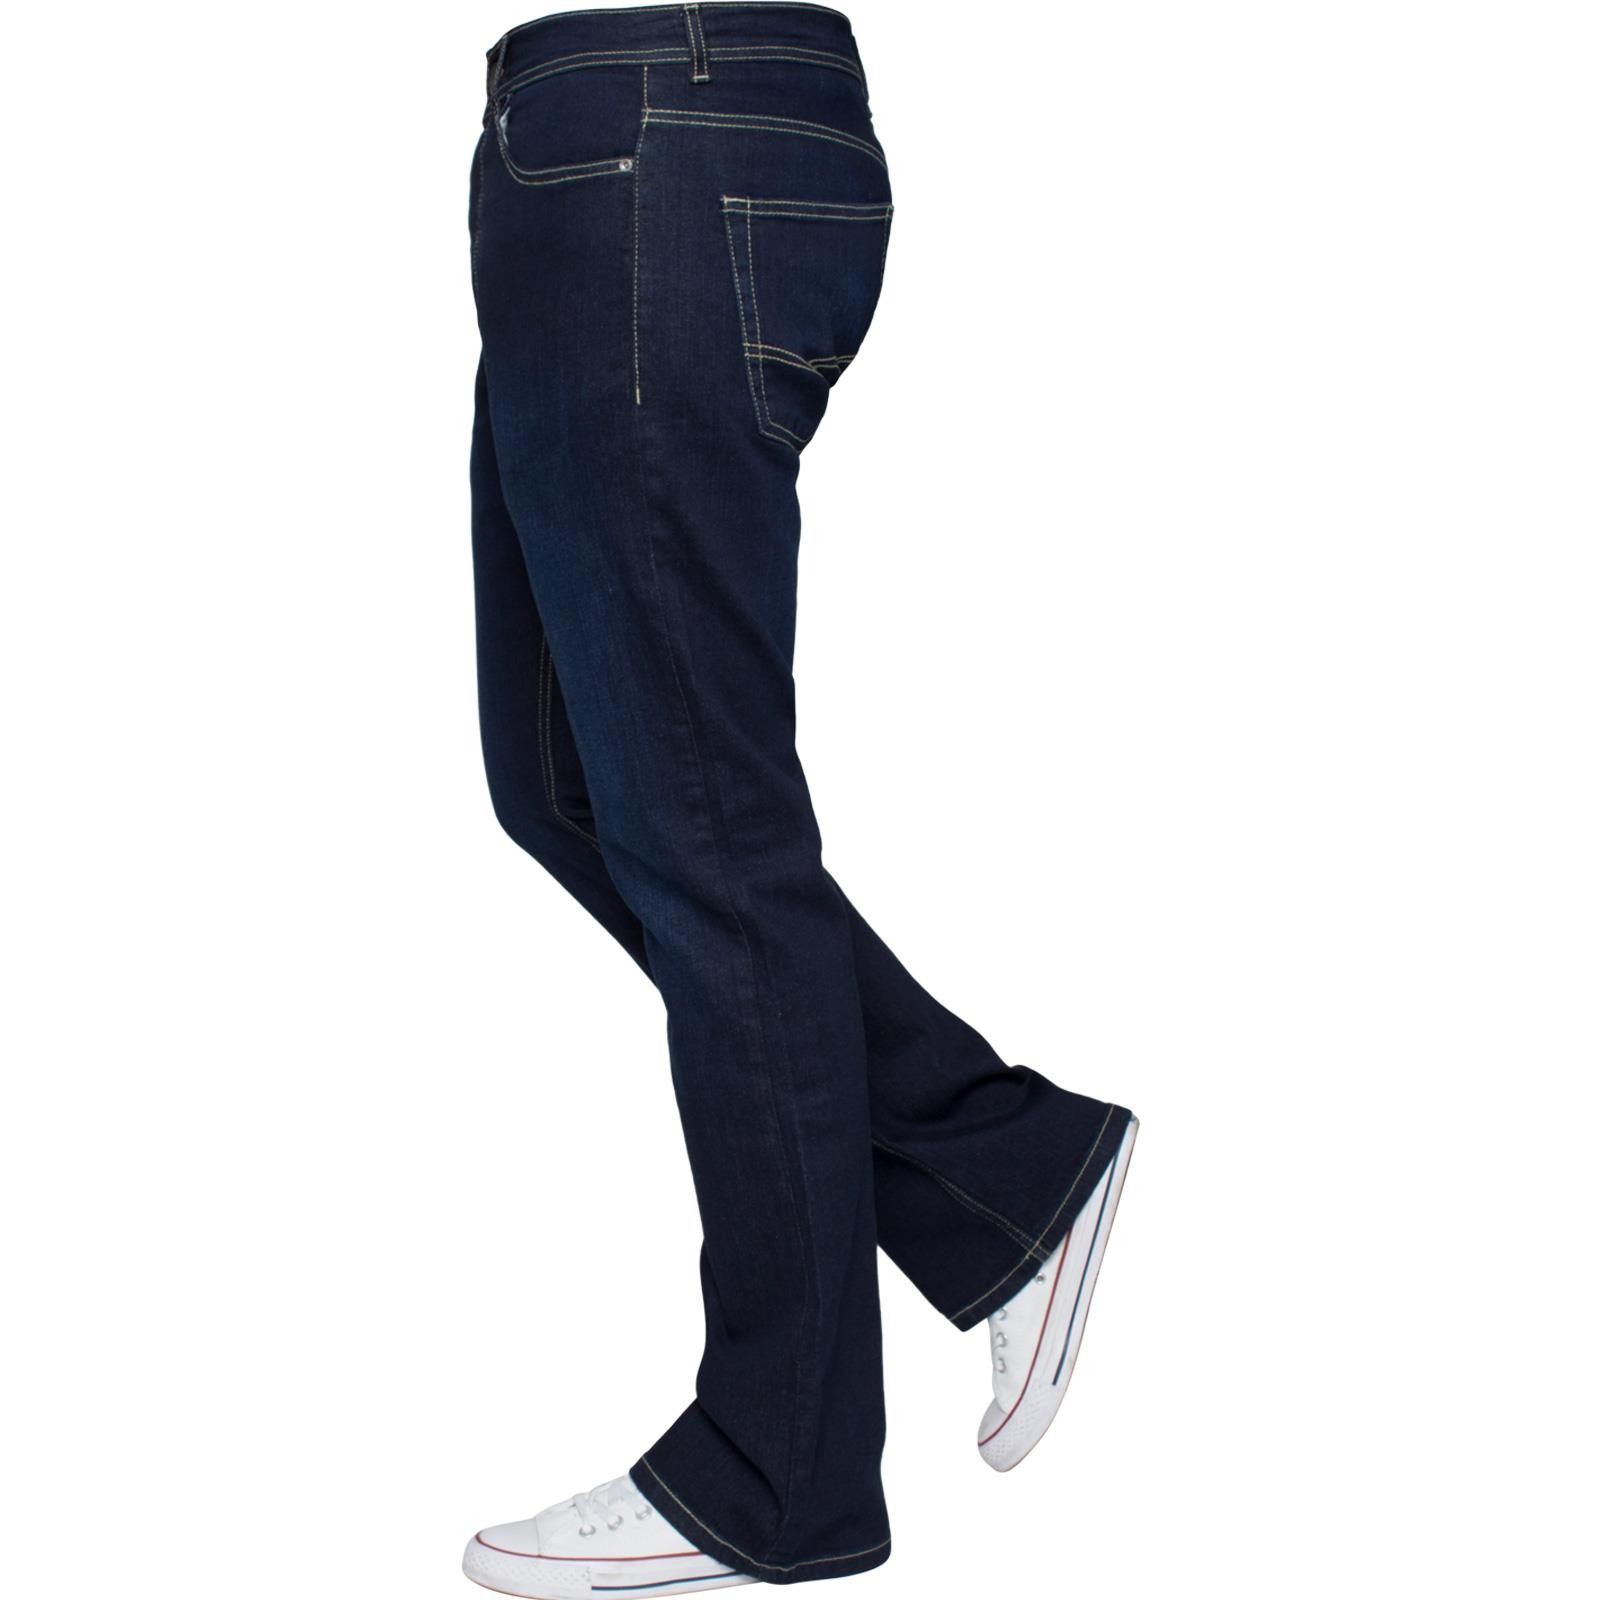 Enzo-Mens-Jeans-Big-Tall-Leg-King-Size-Denim-Pants-Chino-Trousers-Waist-44-034-60-034 miniature 94